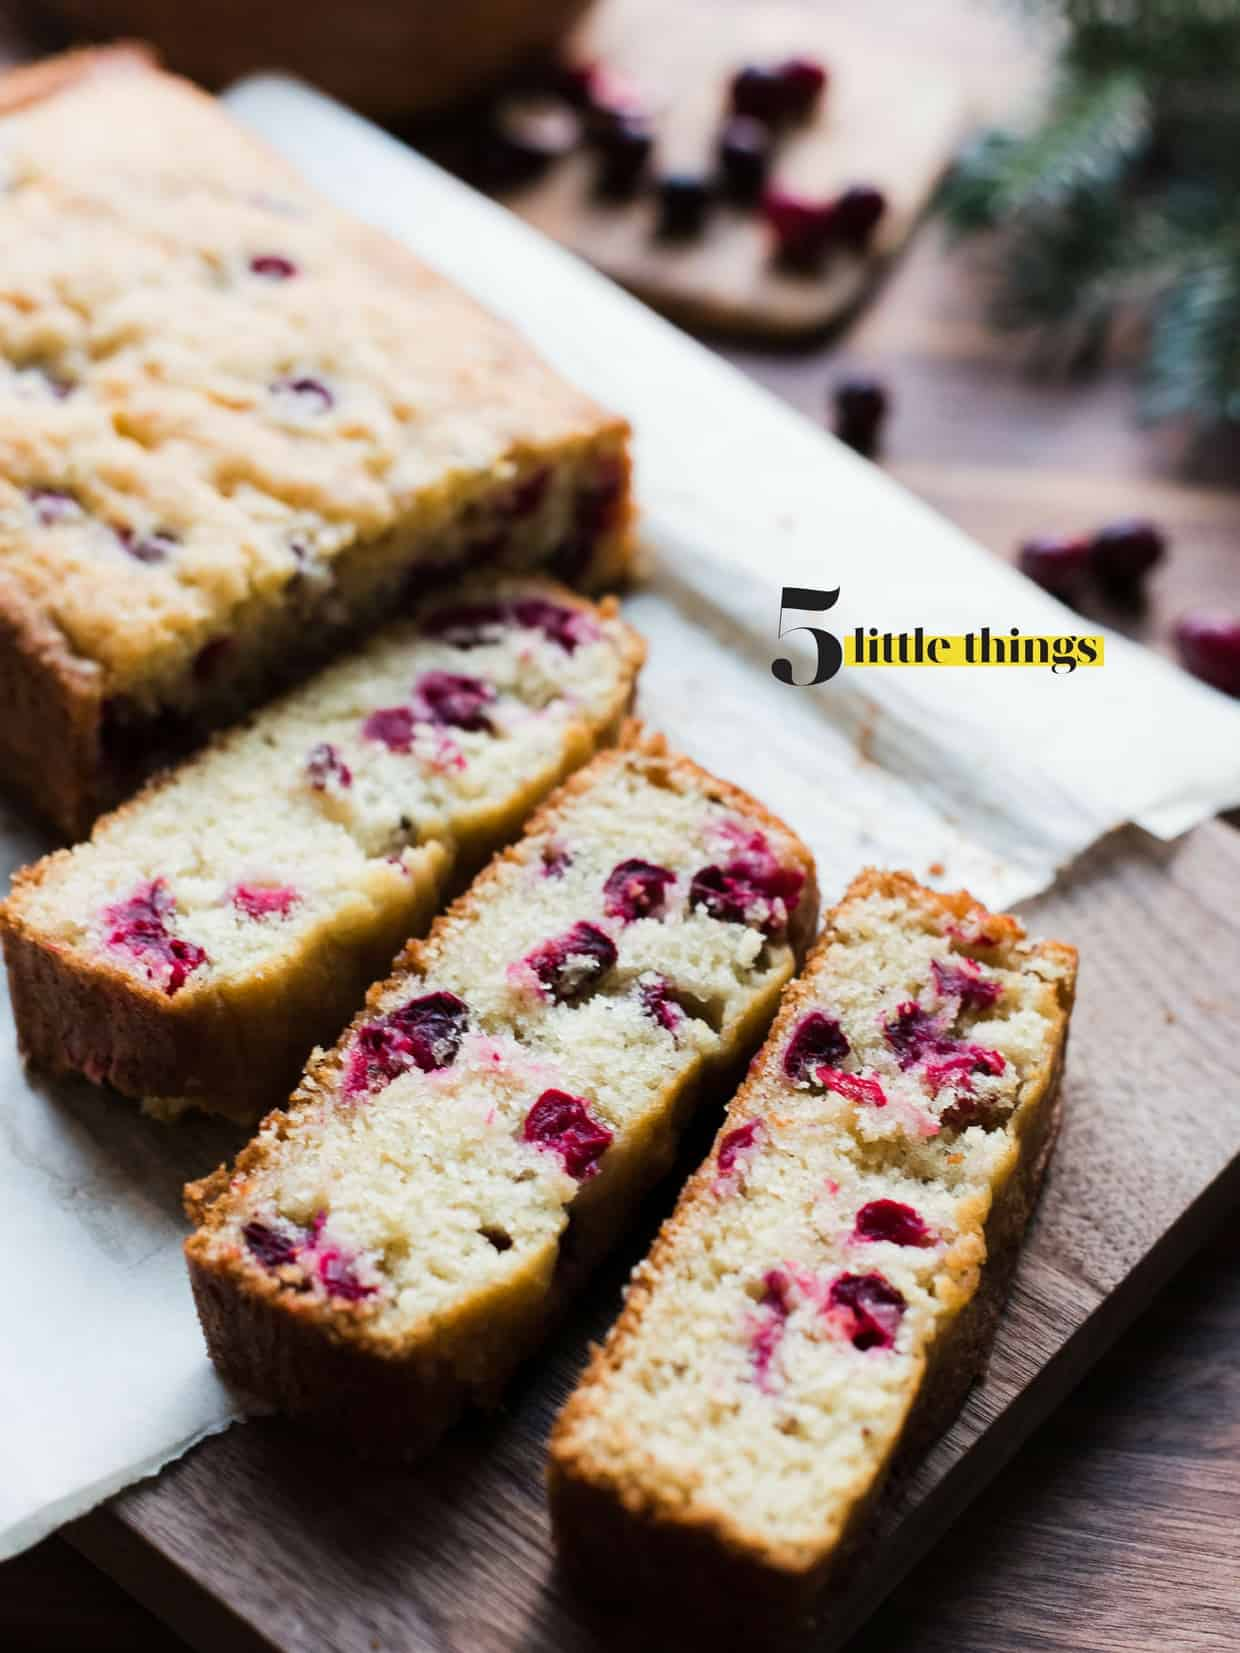 A loaf of cranberry bread cut into slices and served on a wooden cutting board.